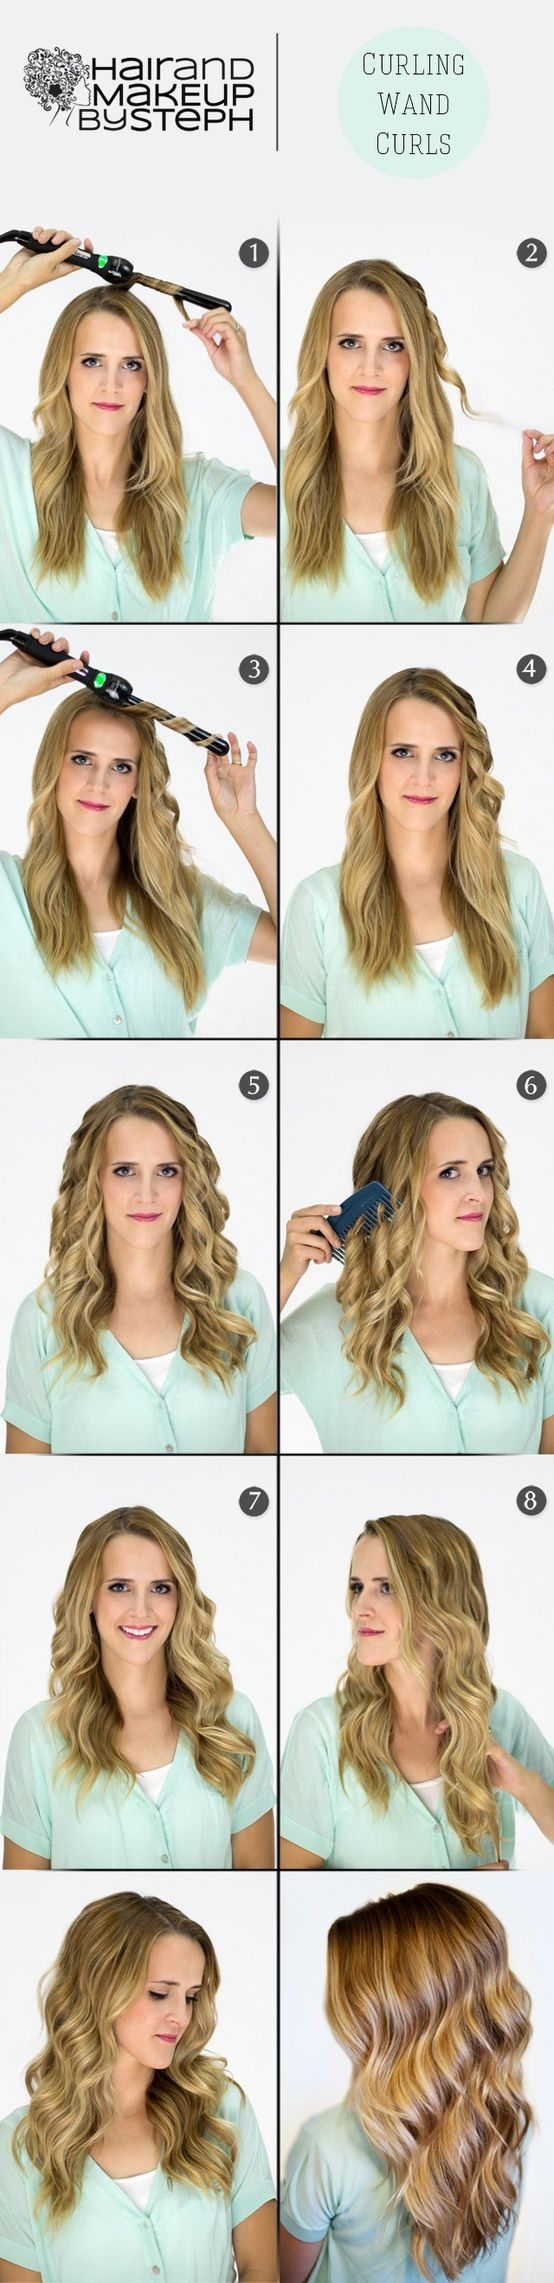 I need to actually use my curling wand!